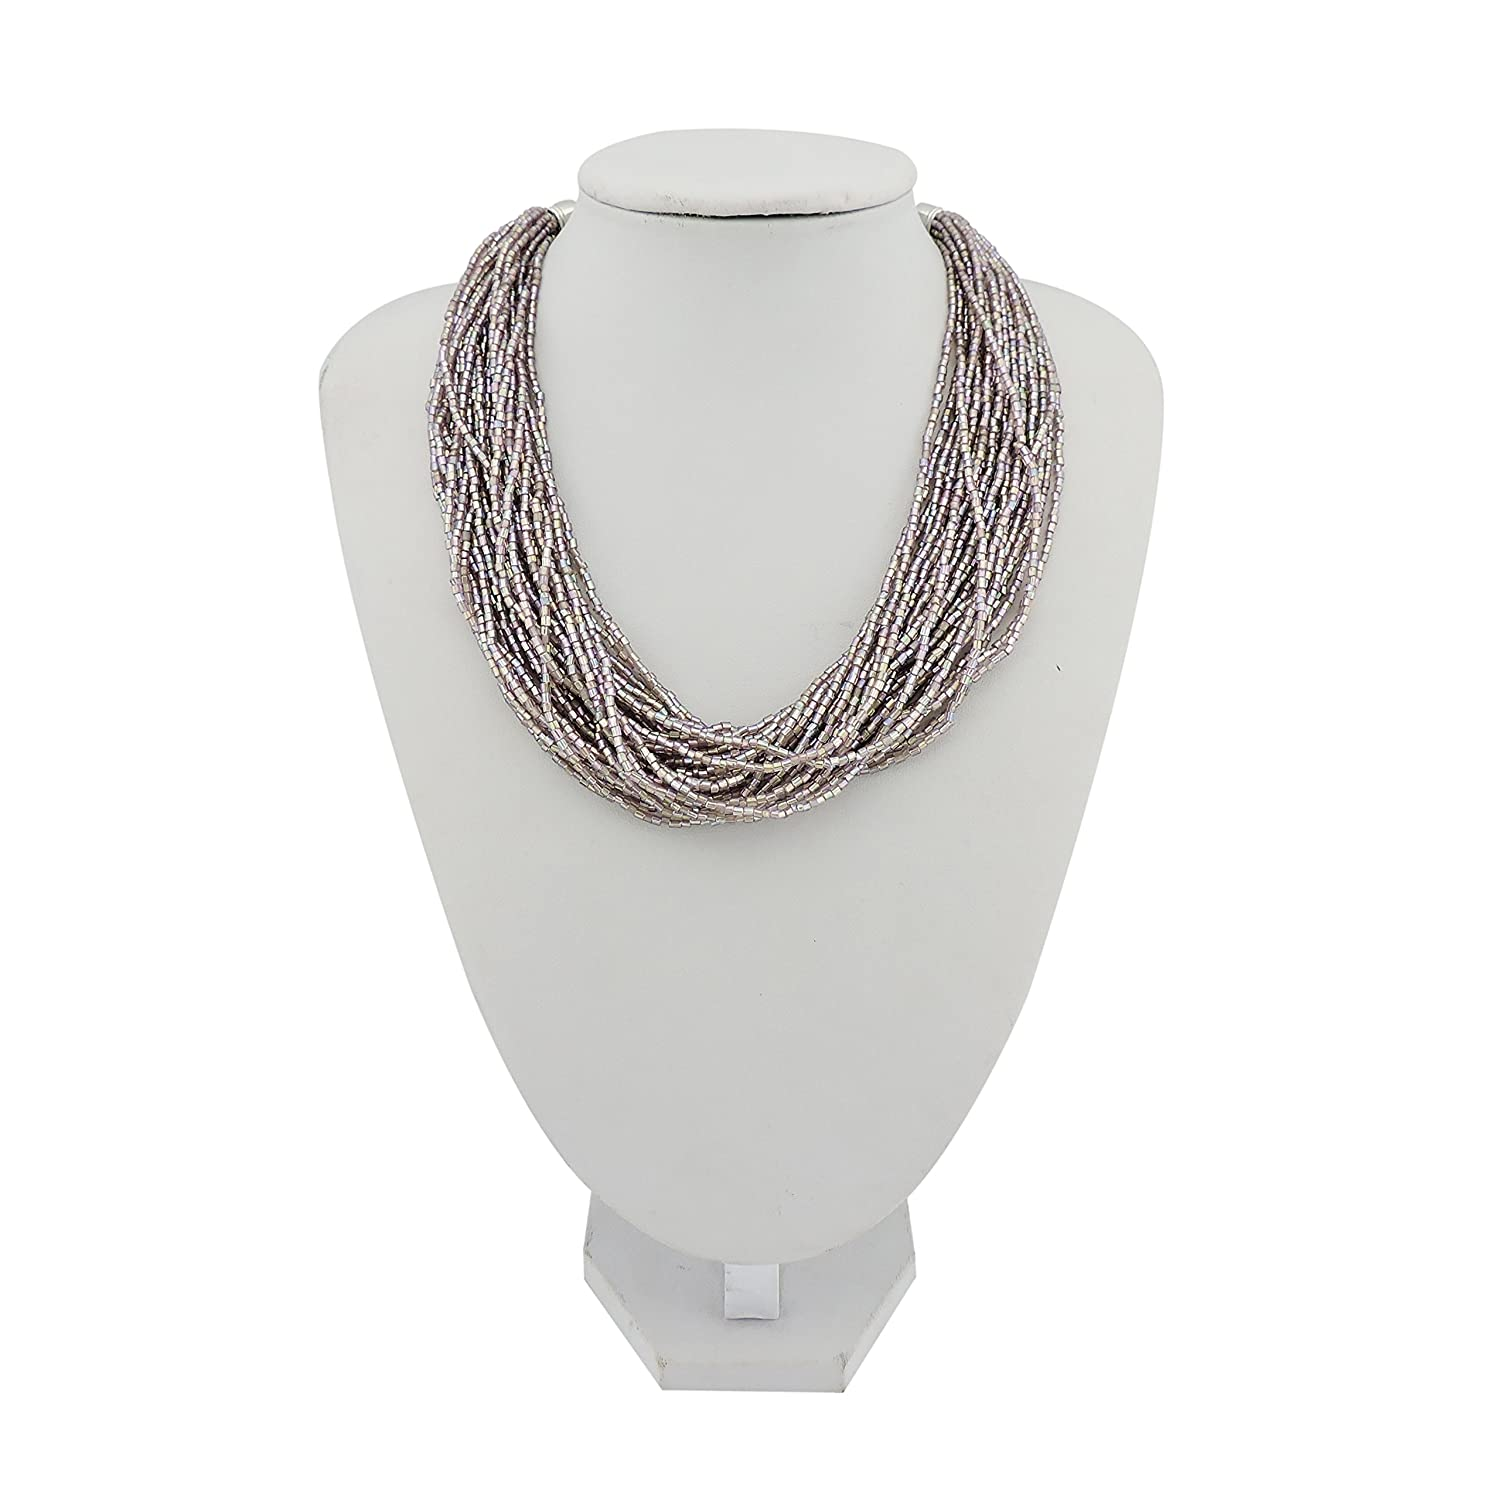 Bocar Multiple Strand Handmade Beaded 16 Statement Collar Necklace for Women with Gift Box bocarjewelry NK-10402